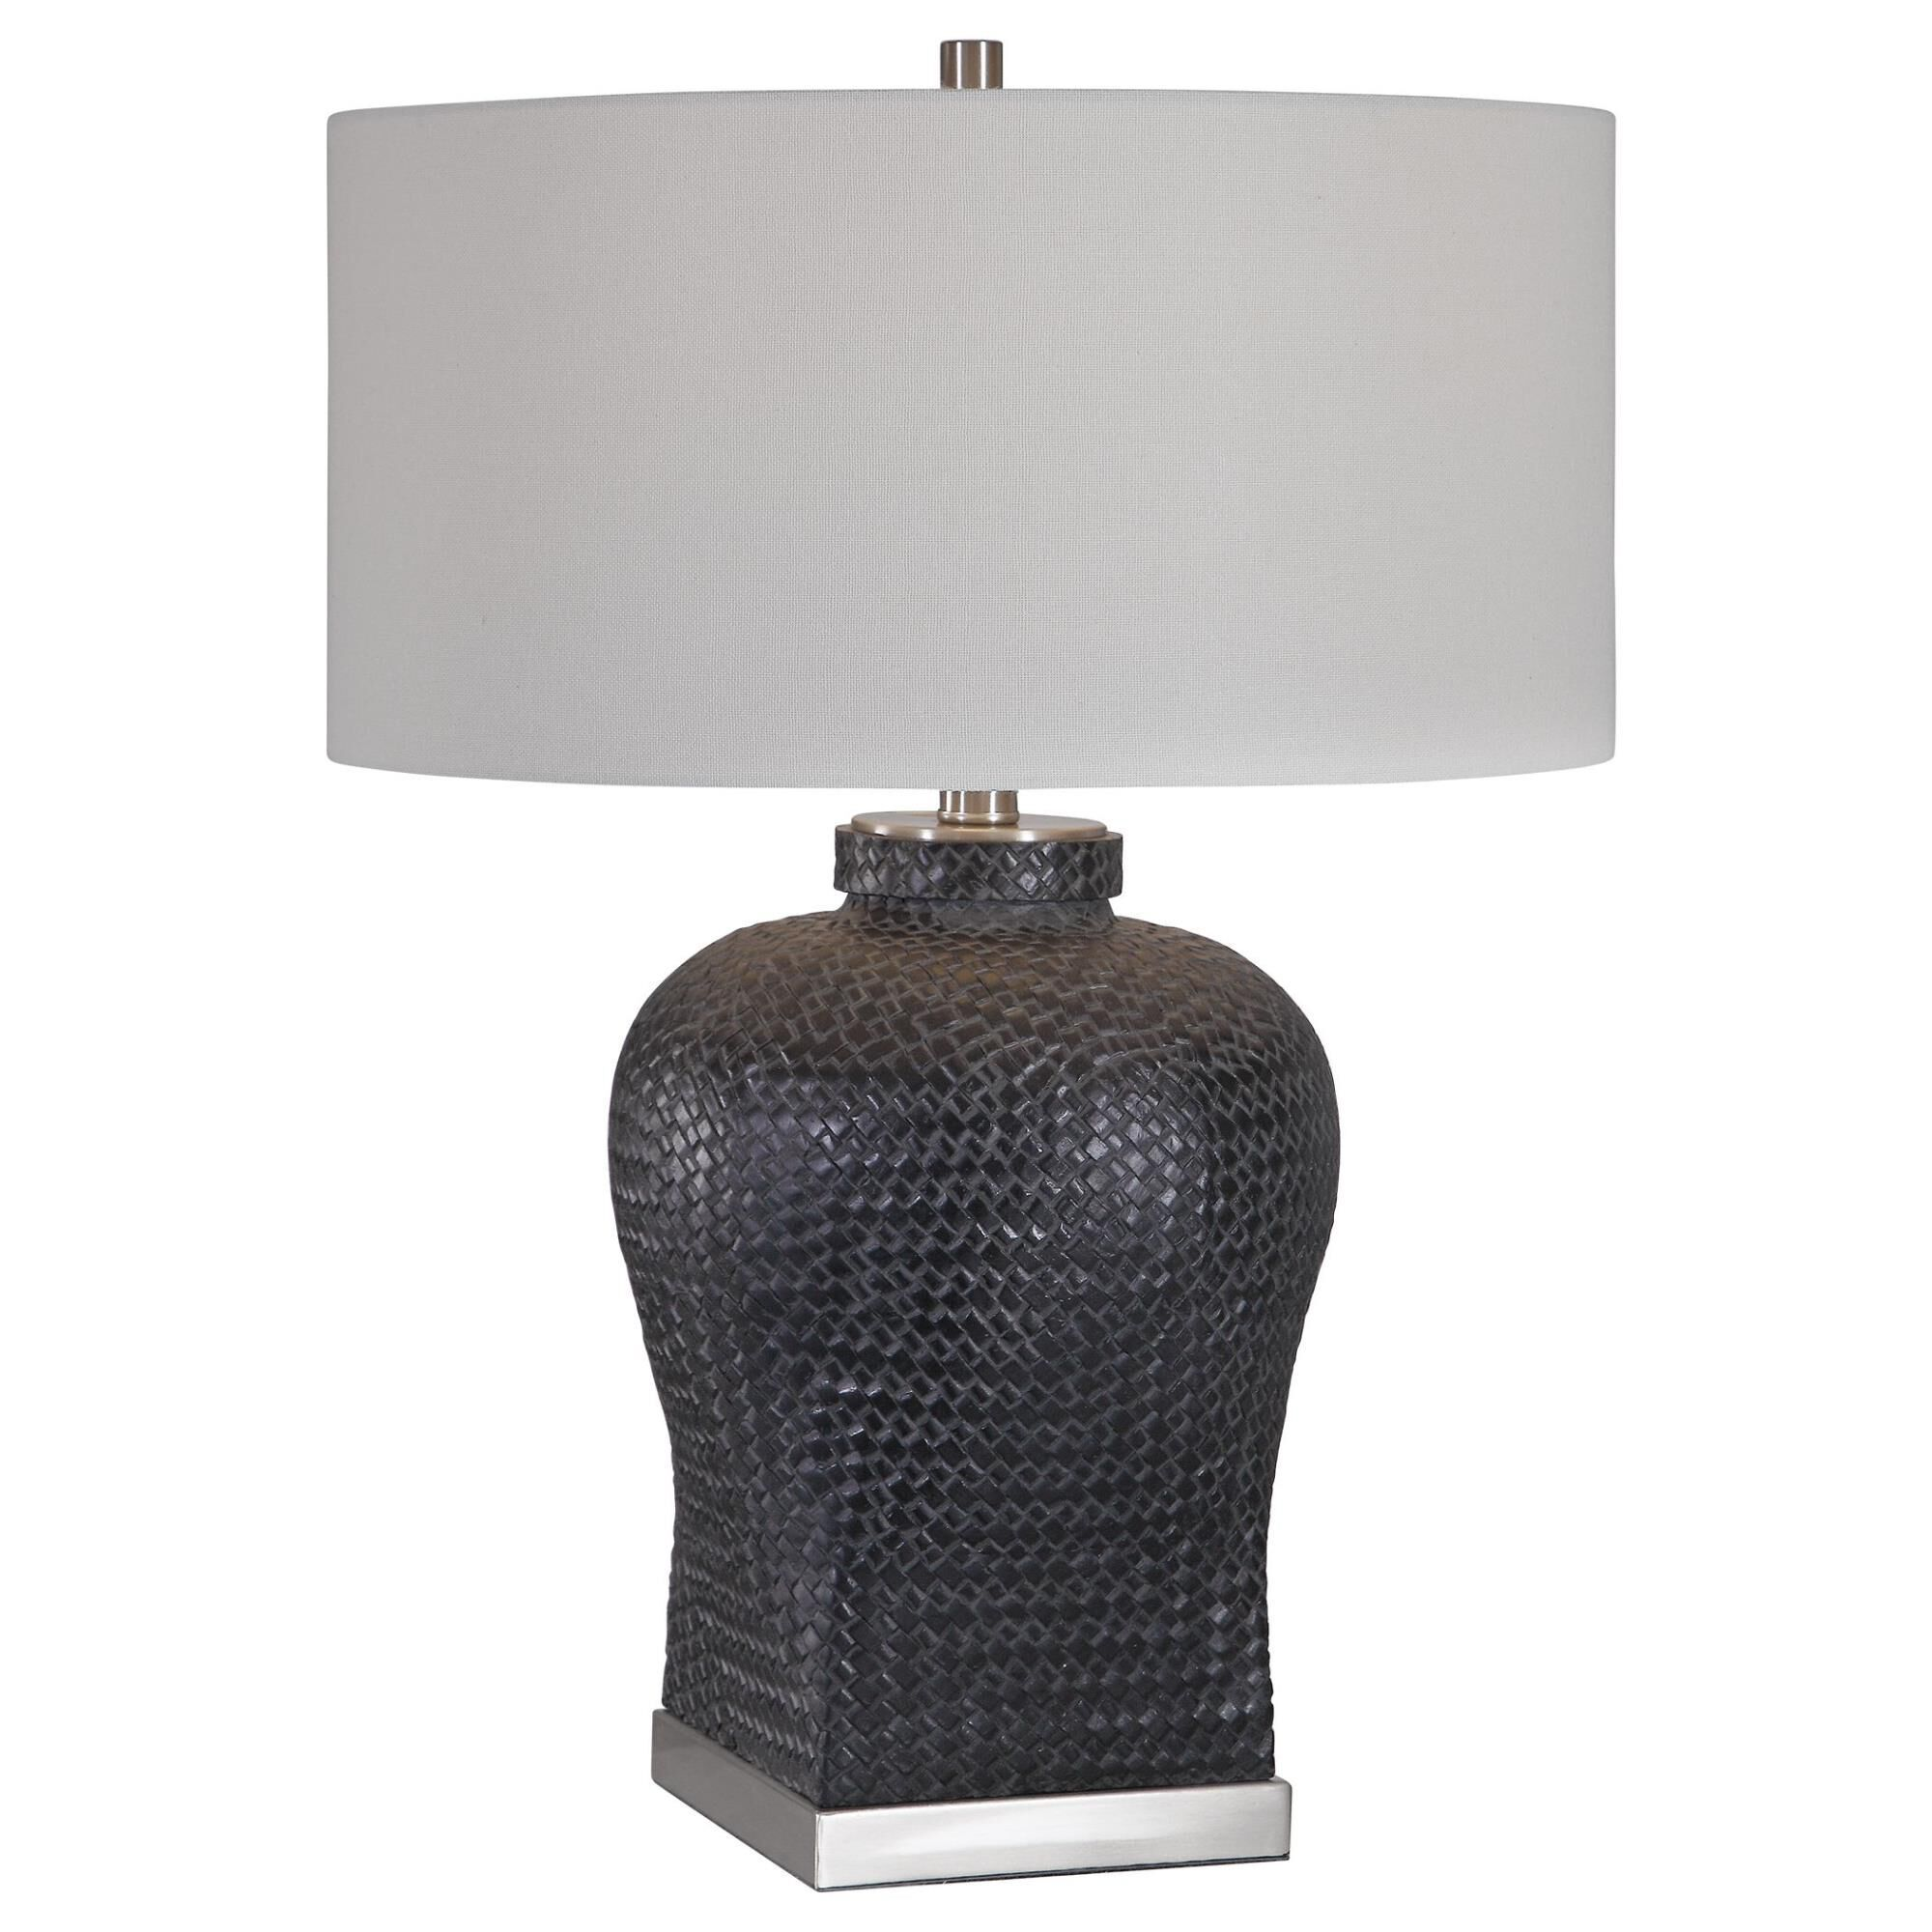 Jim Parsons Akello 28 Inch Table Lamp Capitol Lighting In 2020 Lamp Fabric Shades Lamp Shade